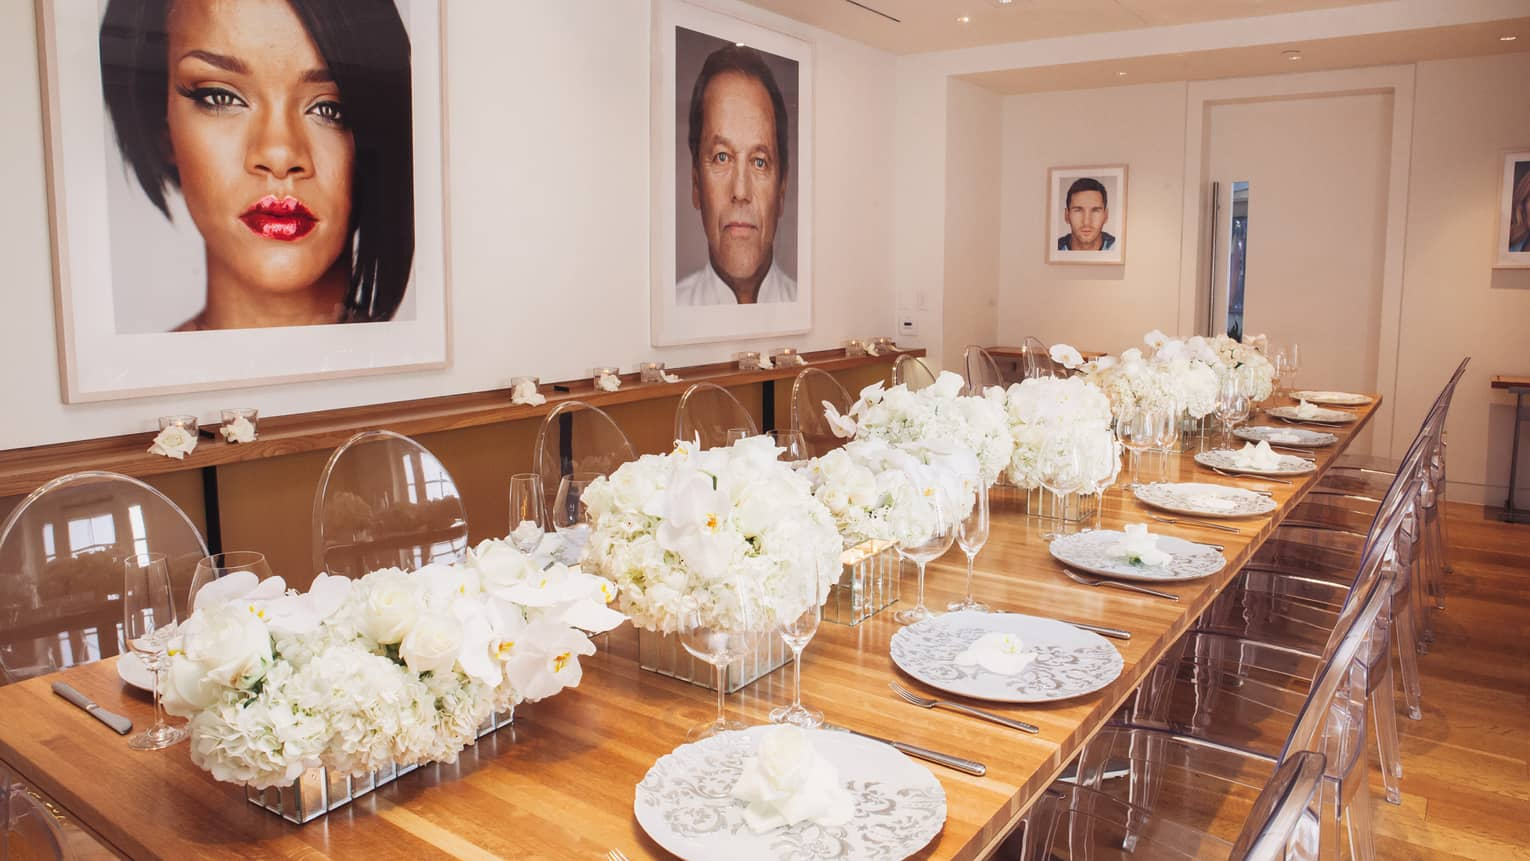 Petit Cut long wood banquet table with white roses, clear chairs, under framed prints of Hollywood stars